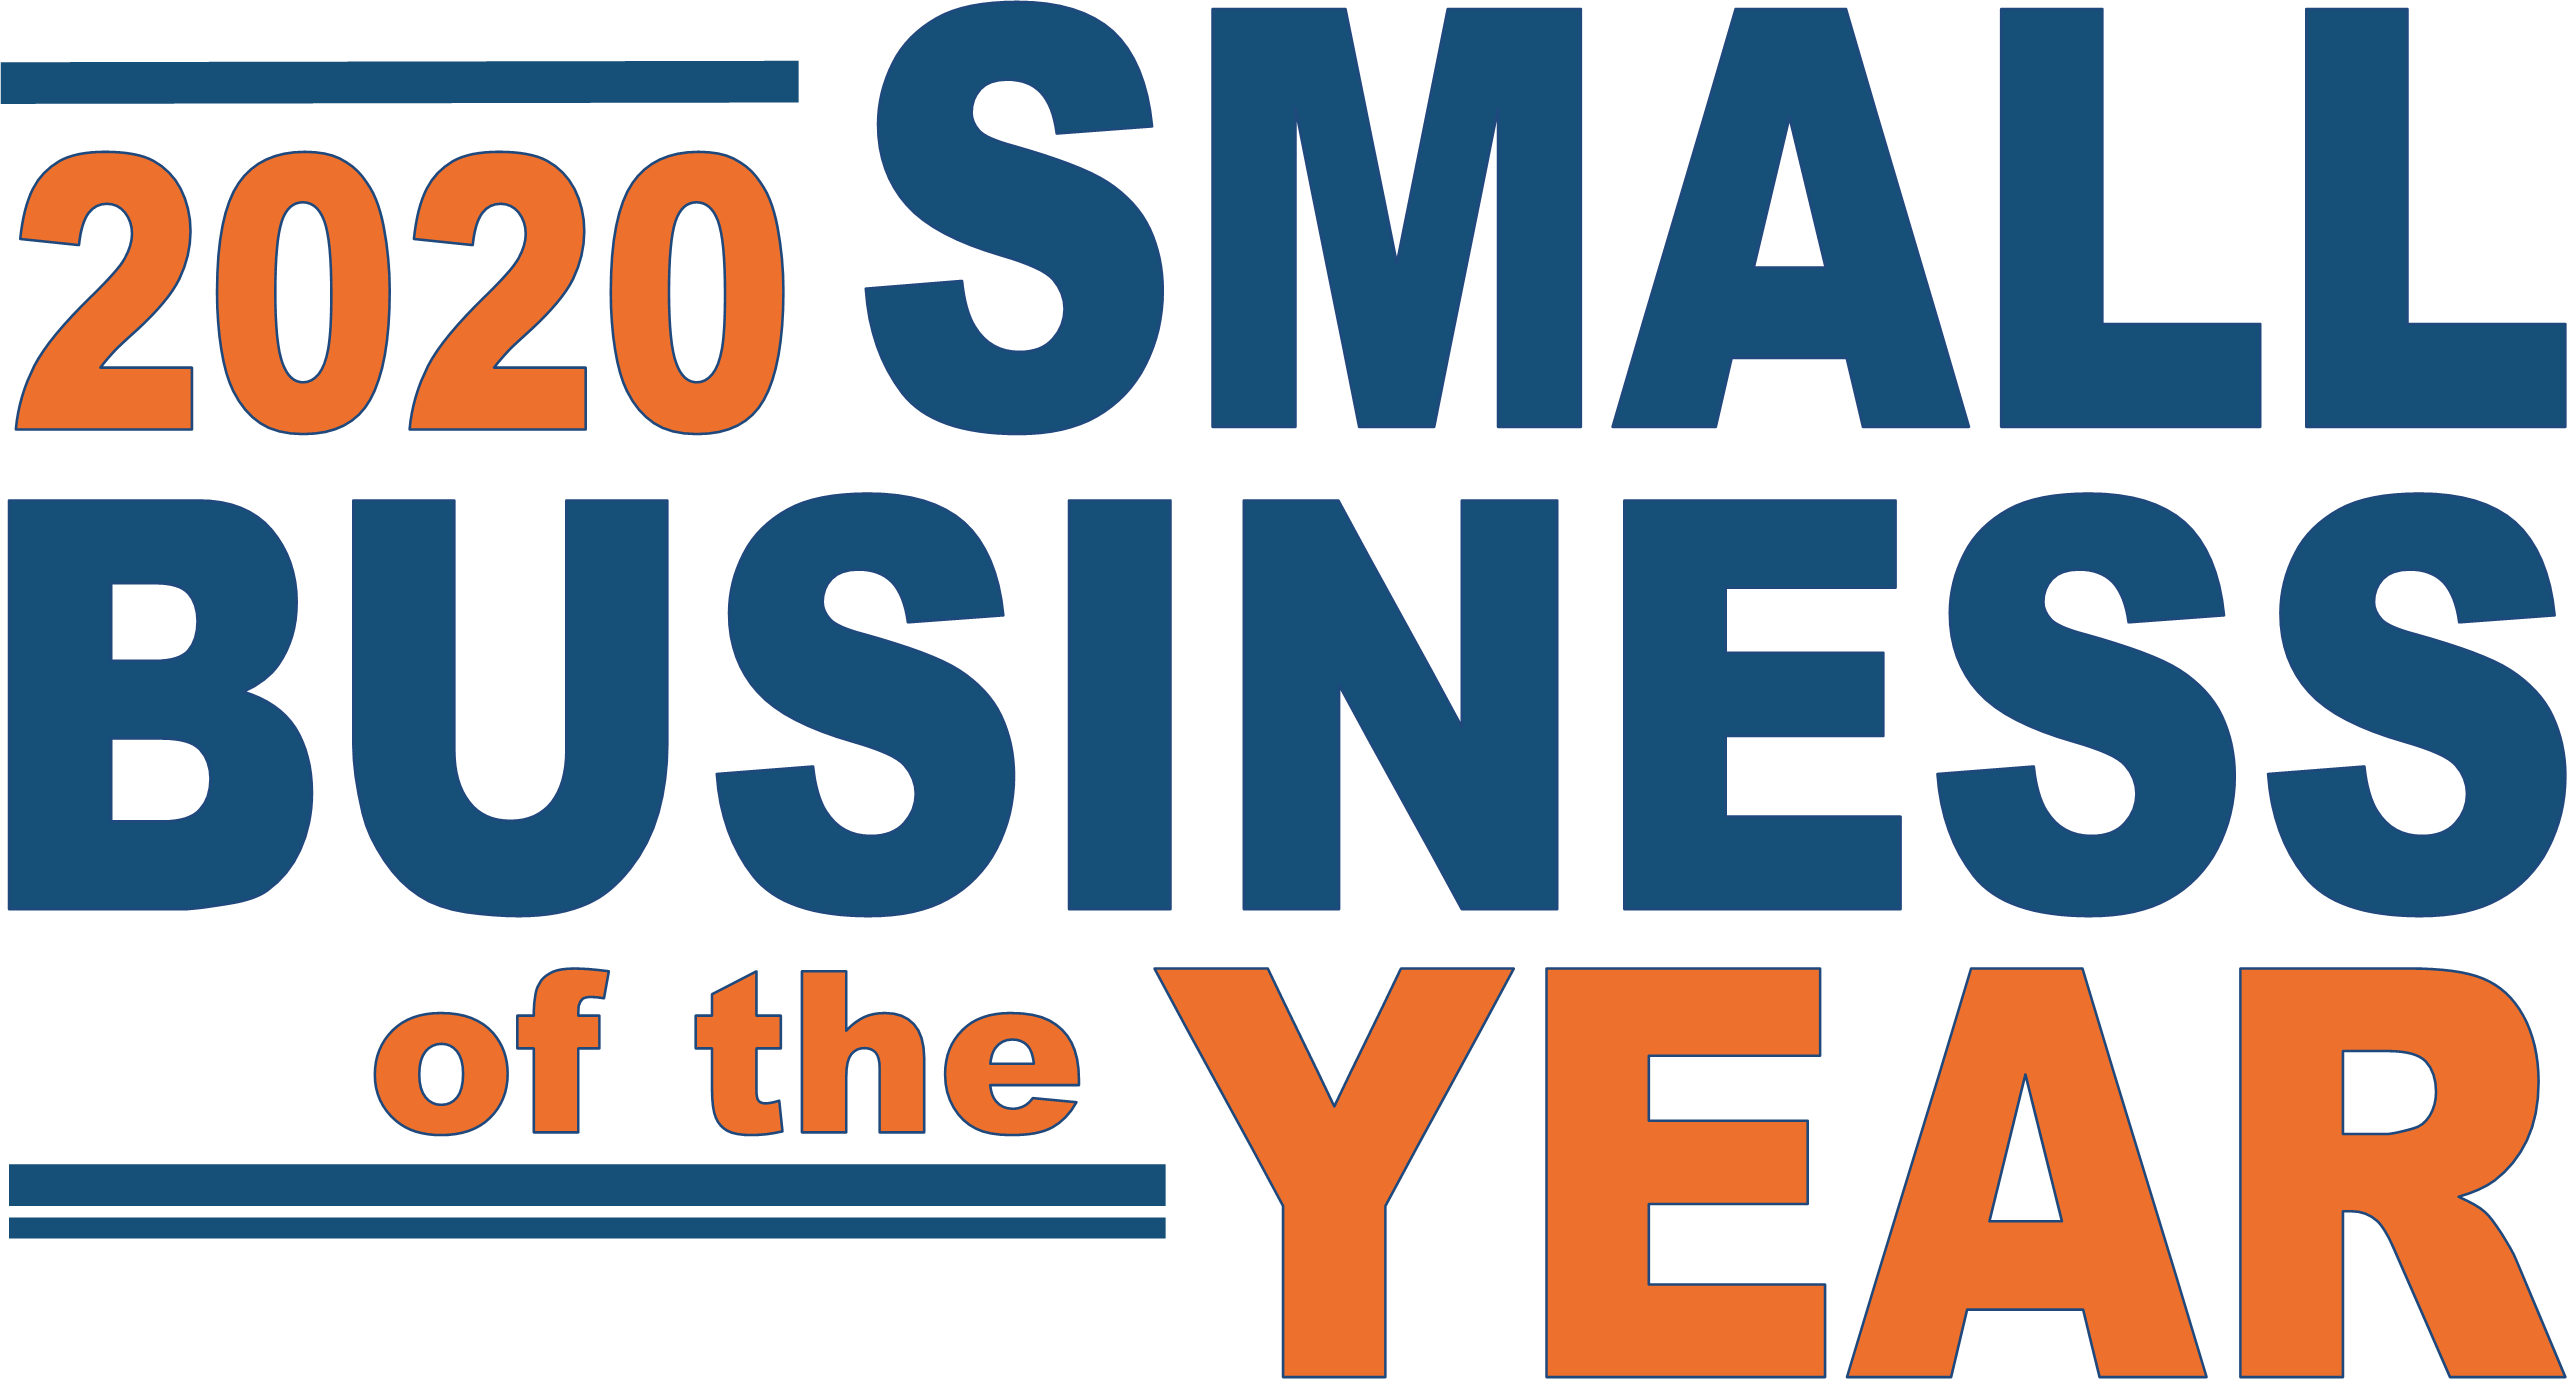 Greater St. Charles County Chamber Announces Finalists for the 2020 Small Business of the Year Award